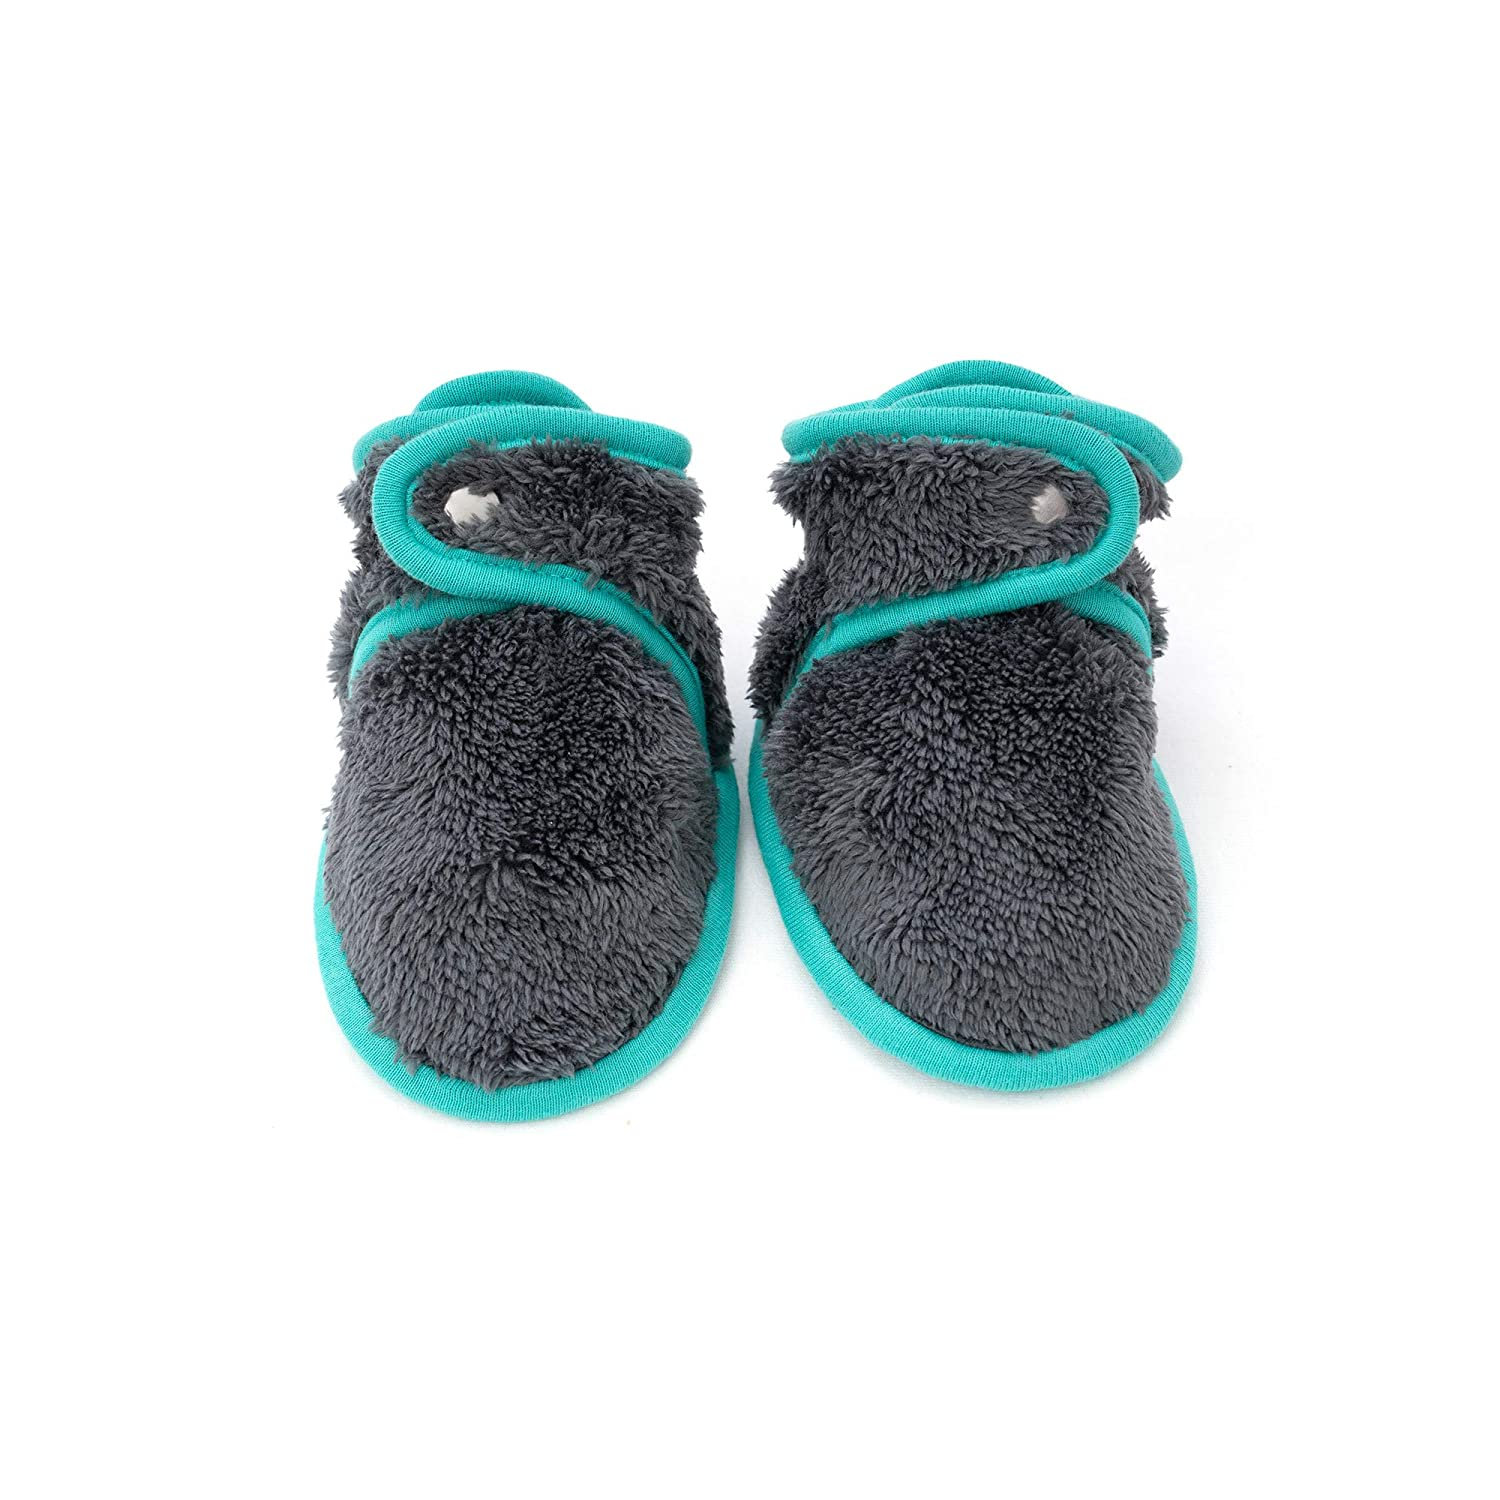 baby deedee Warm Baby Booties Baby Slippers Stay on with Non Skid Sole for Newborns and Infants 6 Months